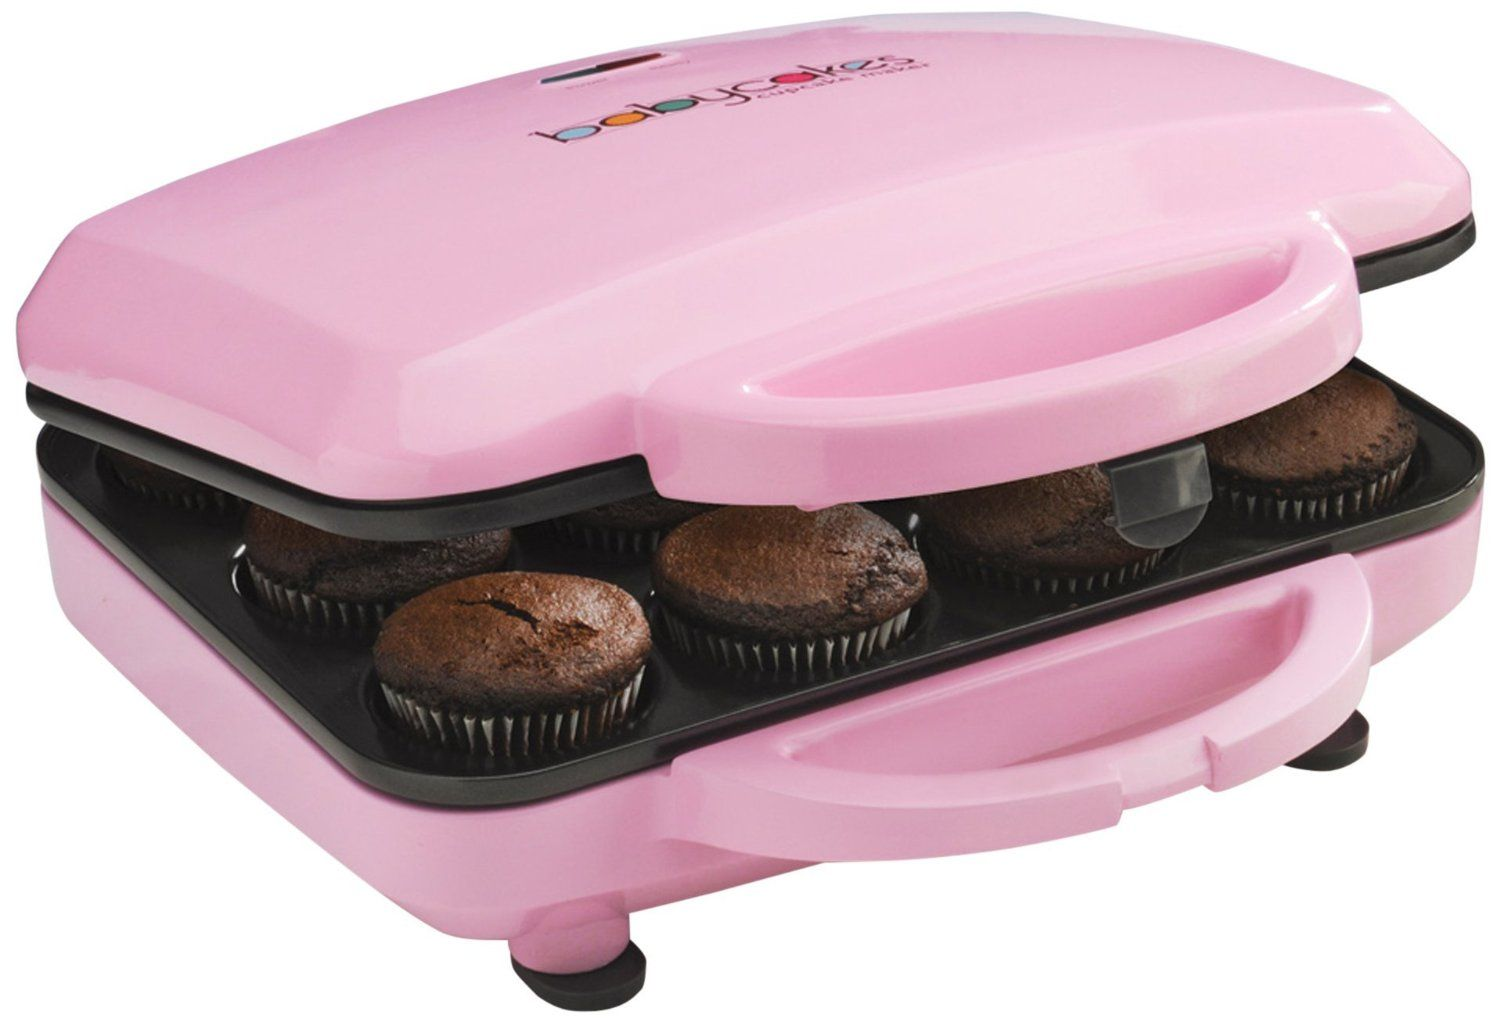 Babycakes CC-12 Full Size Cupcake Maker, Pink ** You can get more details at : baking gadgets